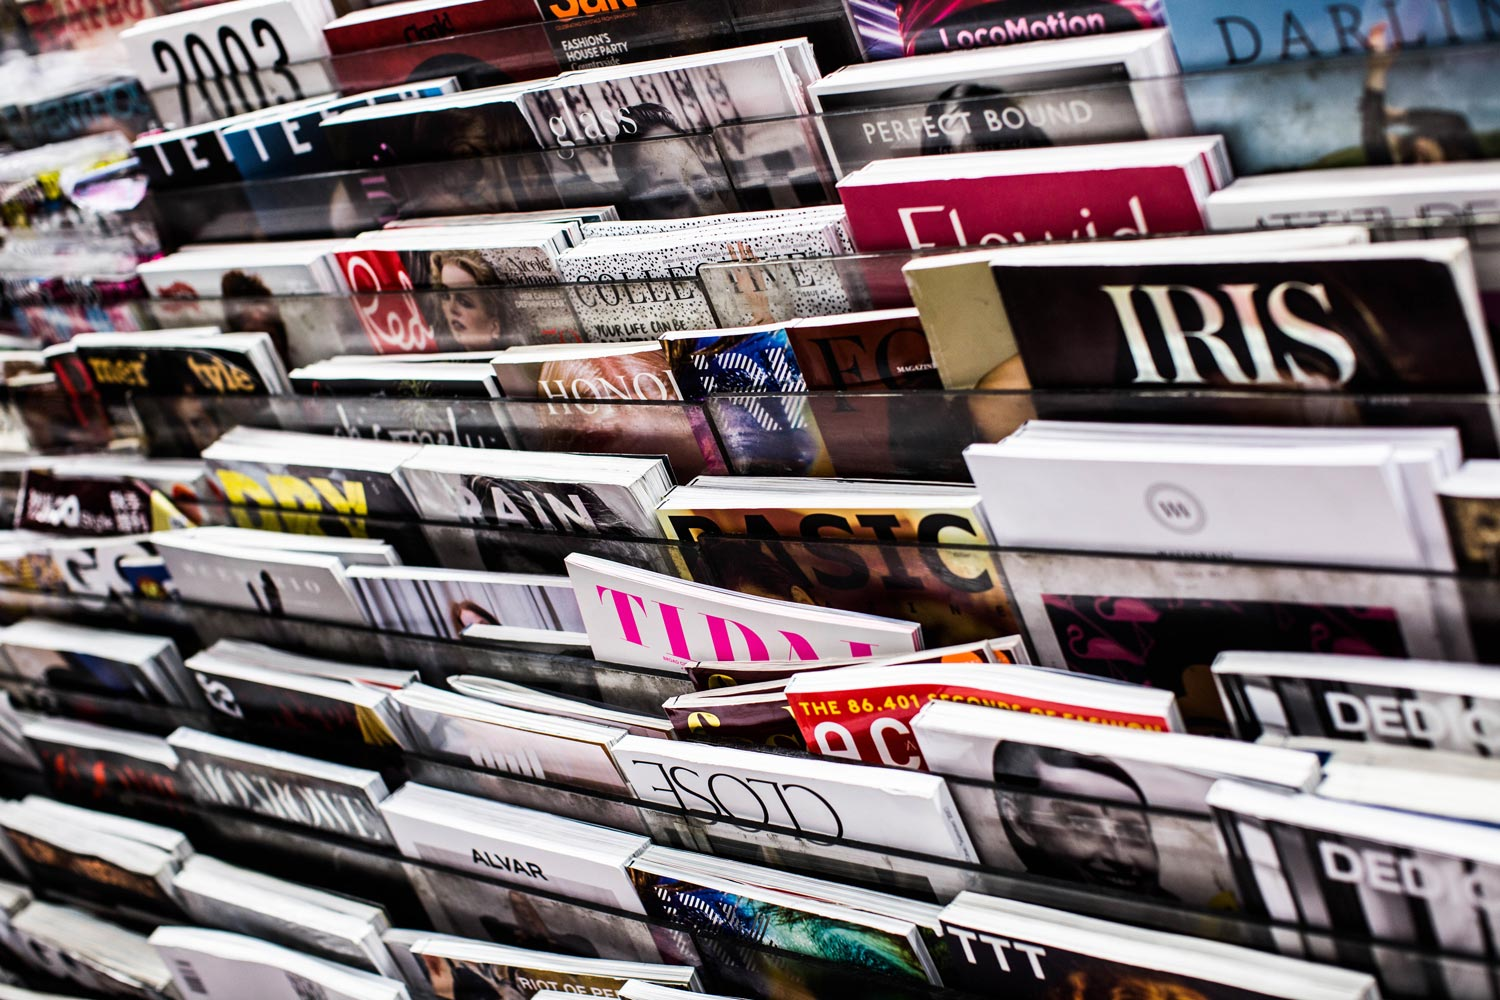 Closeup photo of a bunch of magazines on a rack.